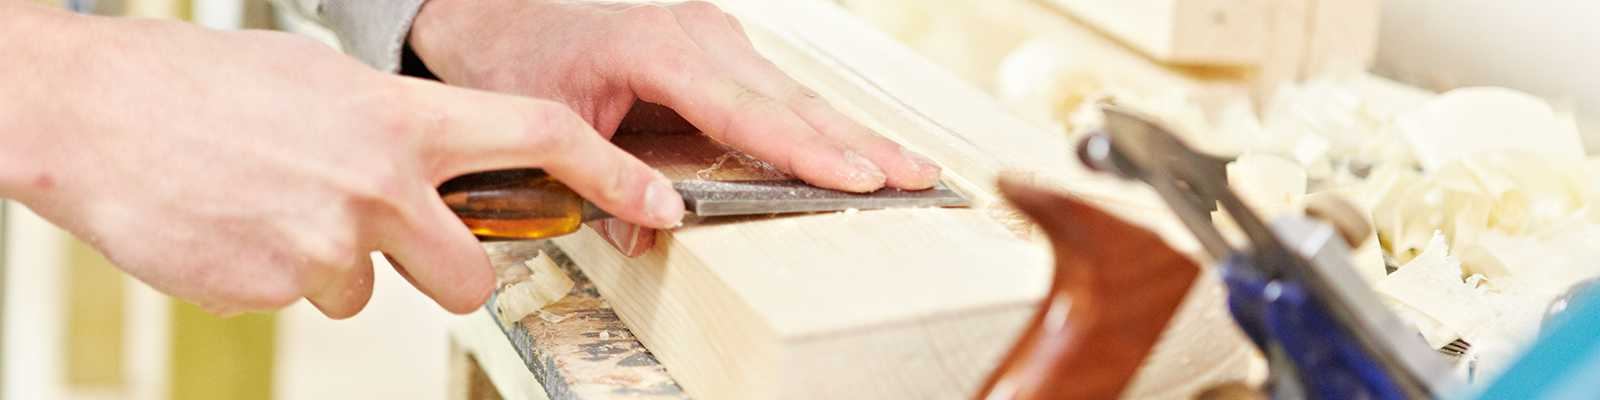 Work Based Assessments for Carpentry NVQ Level 2